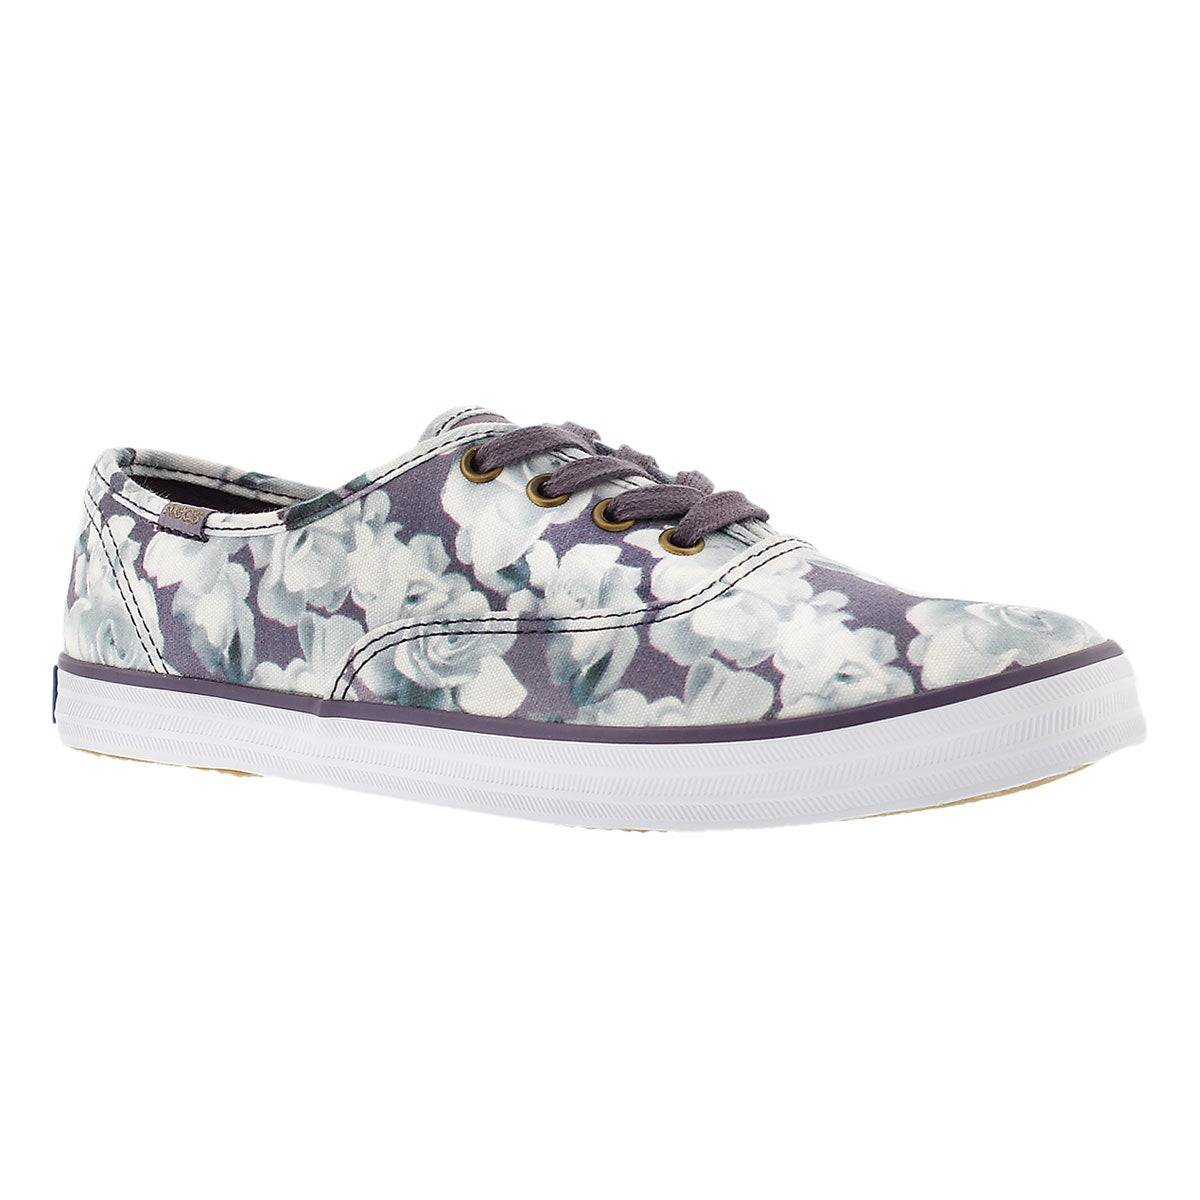 Women's FROST FLORAL purple printed sneakers